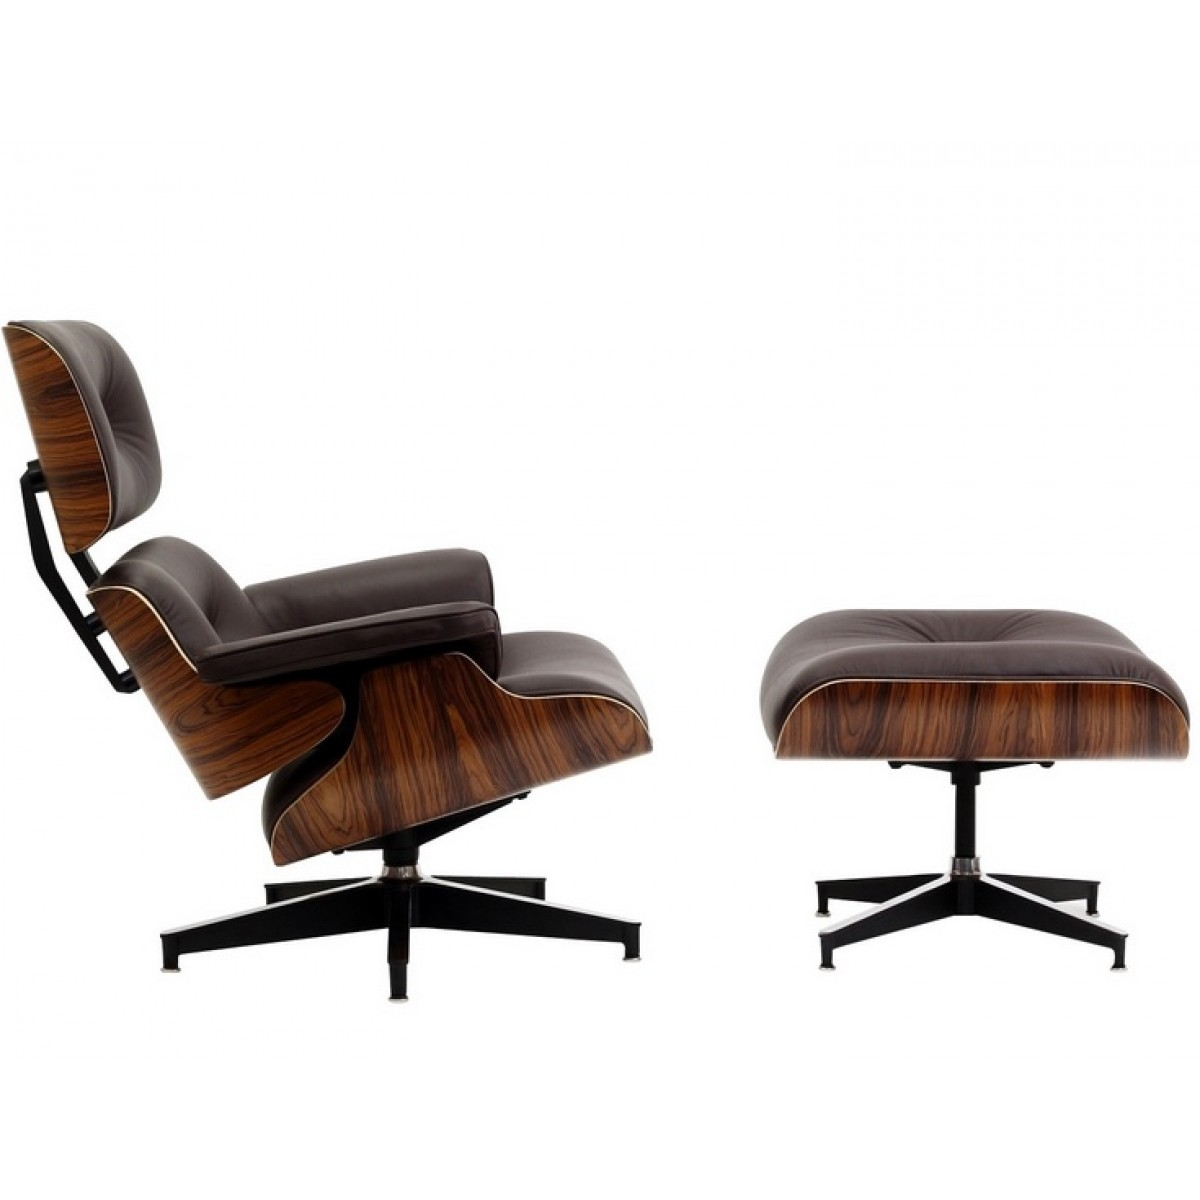 eames style lounge chair and ottoman brown leather walnut wood. Black Bedroom Furniture Sets. Home Design Ideas